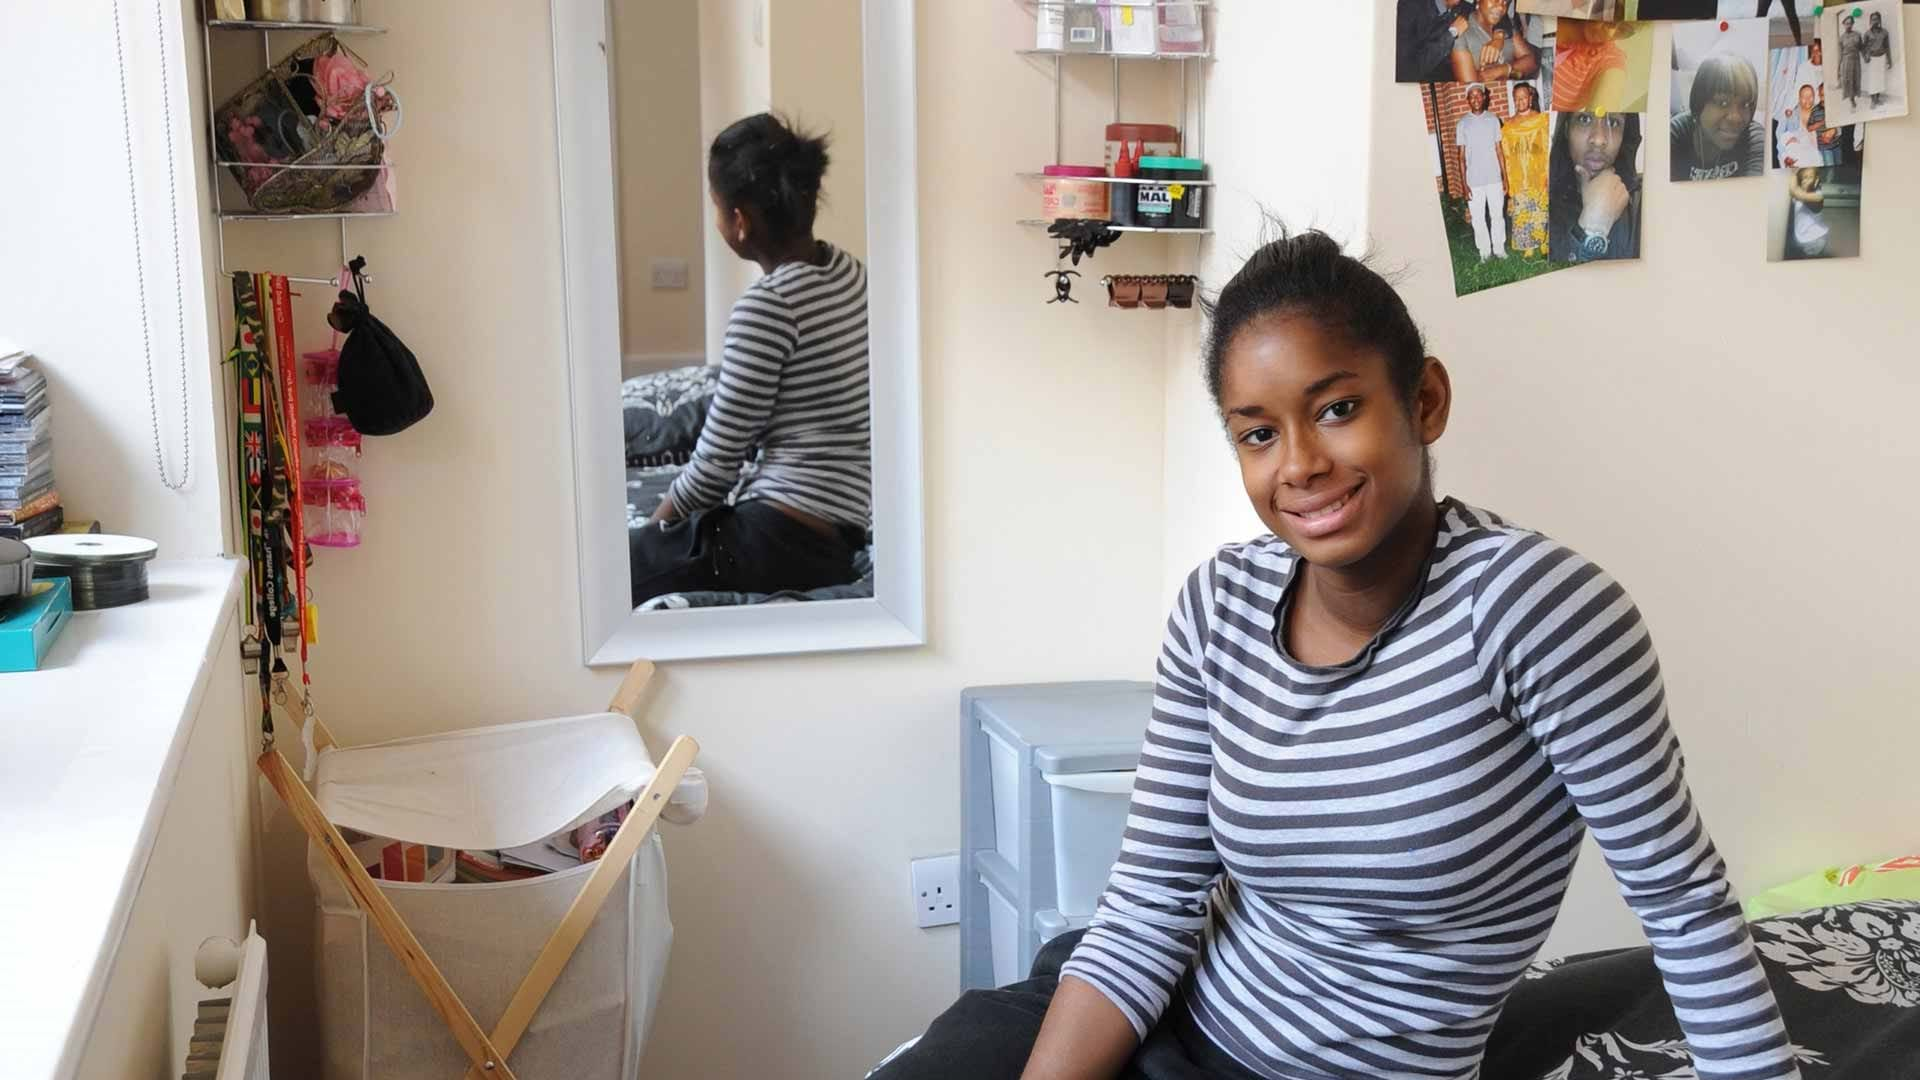 Smiling young woman sits on her bed